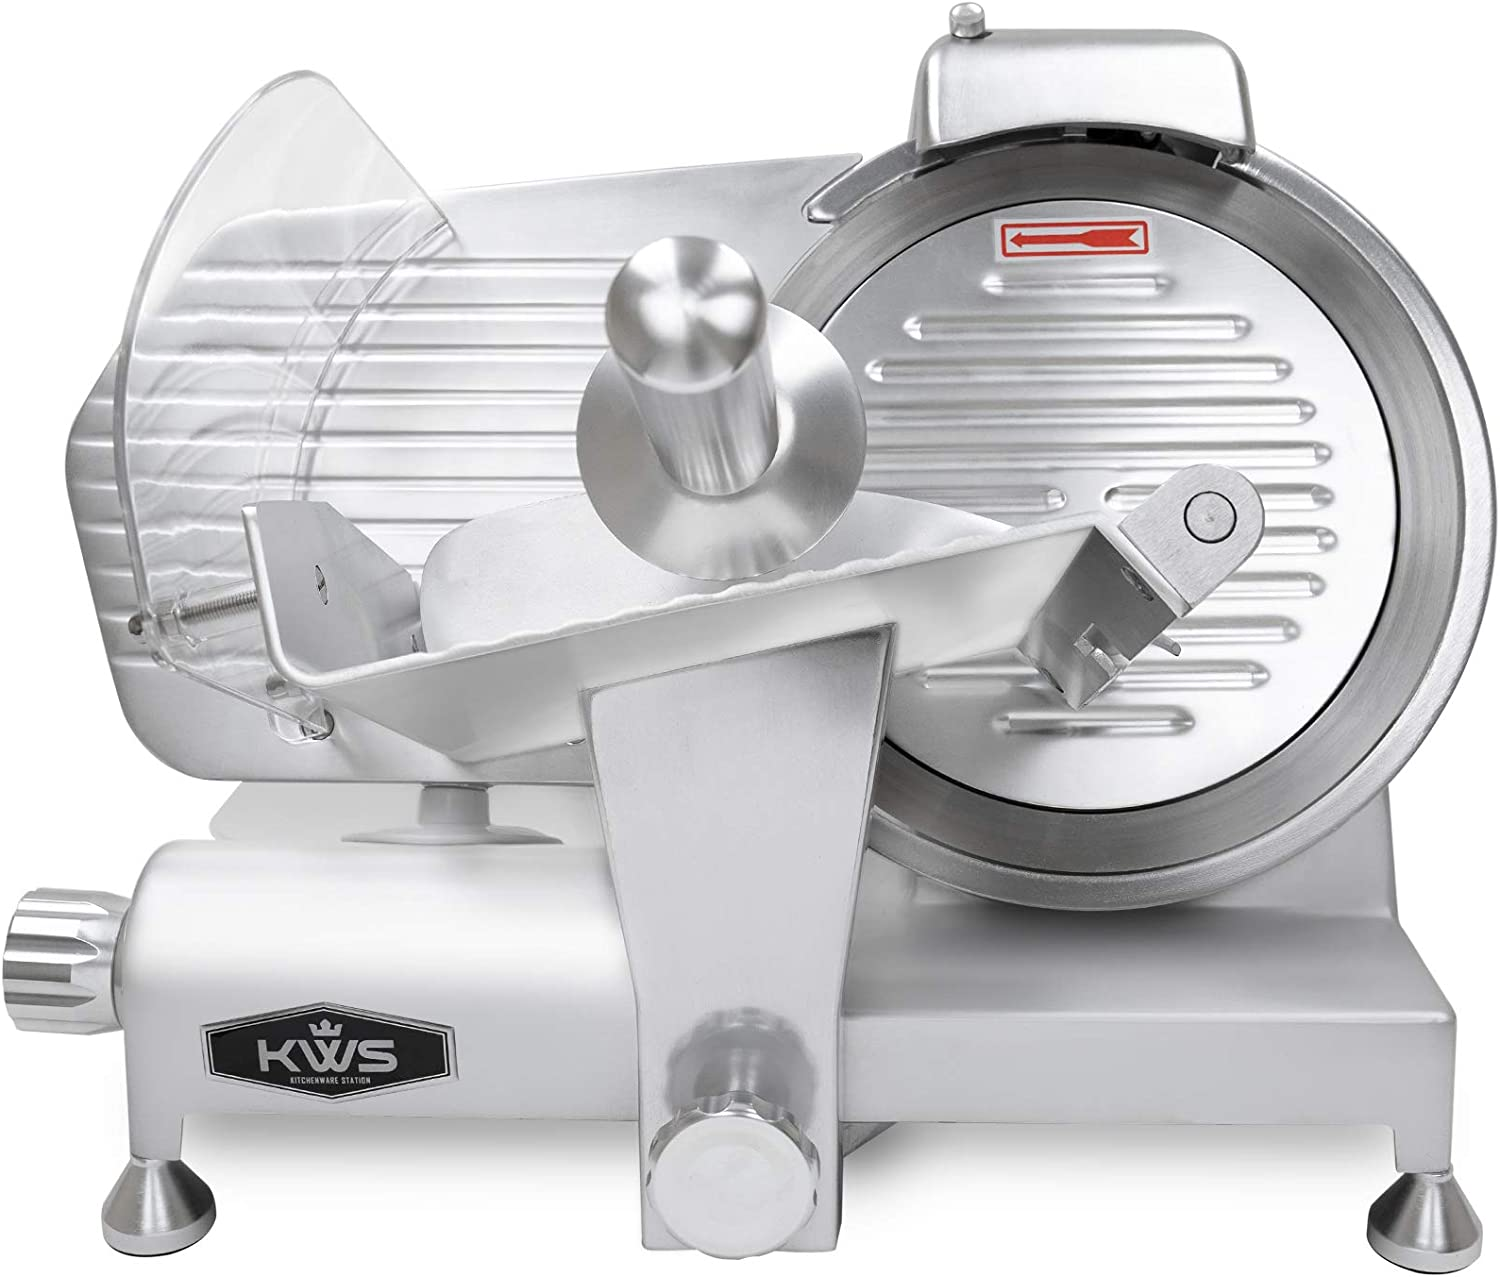 KWS MS-10ES All Metal 320W Electric 304 10-Inch Meat Slicer with Max 48% OFF Denver Mall